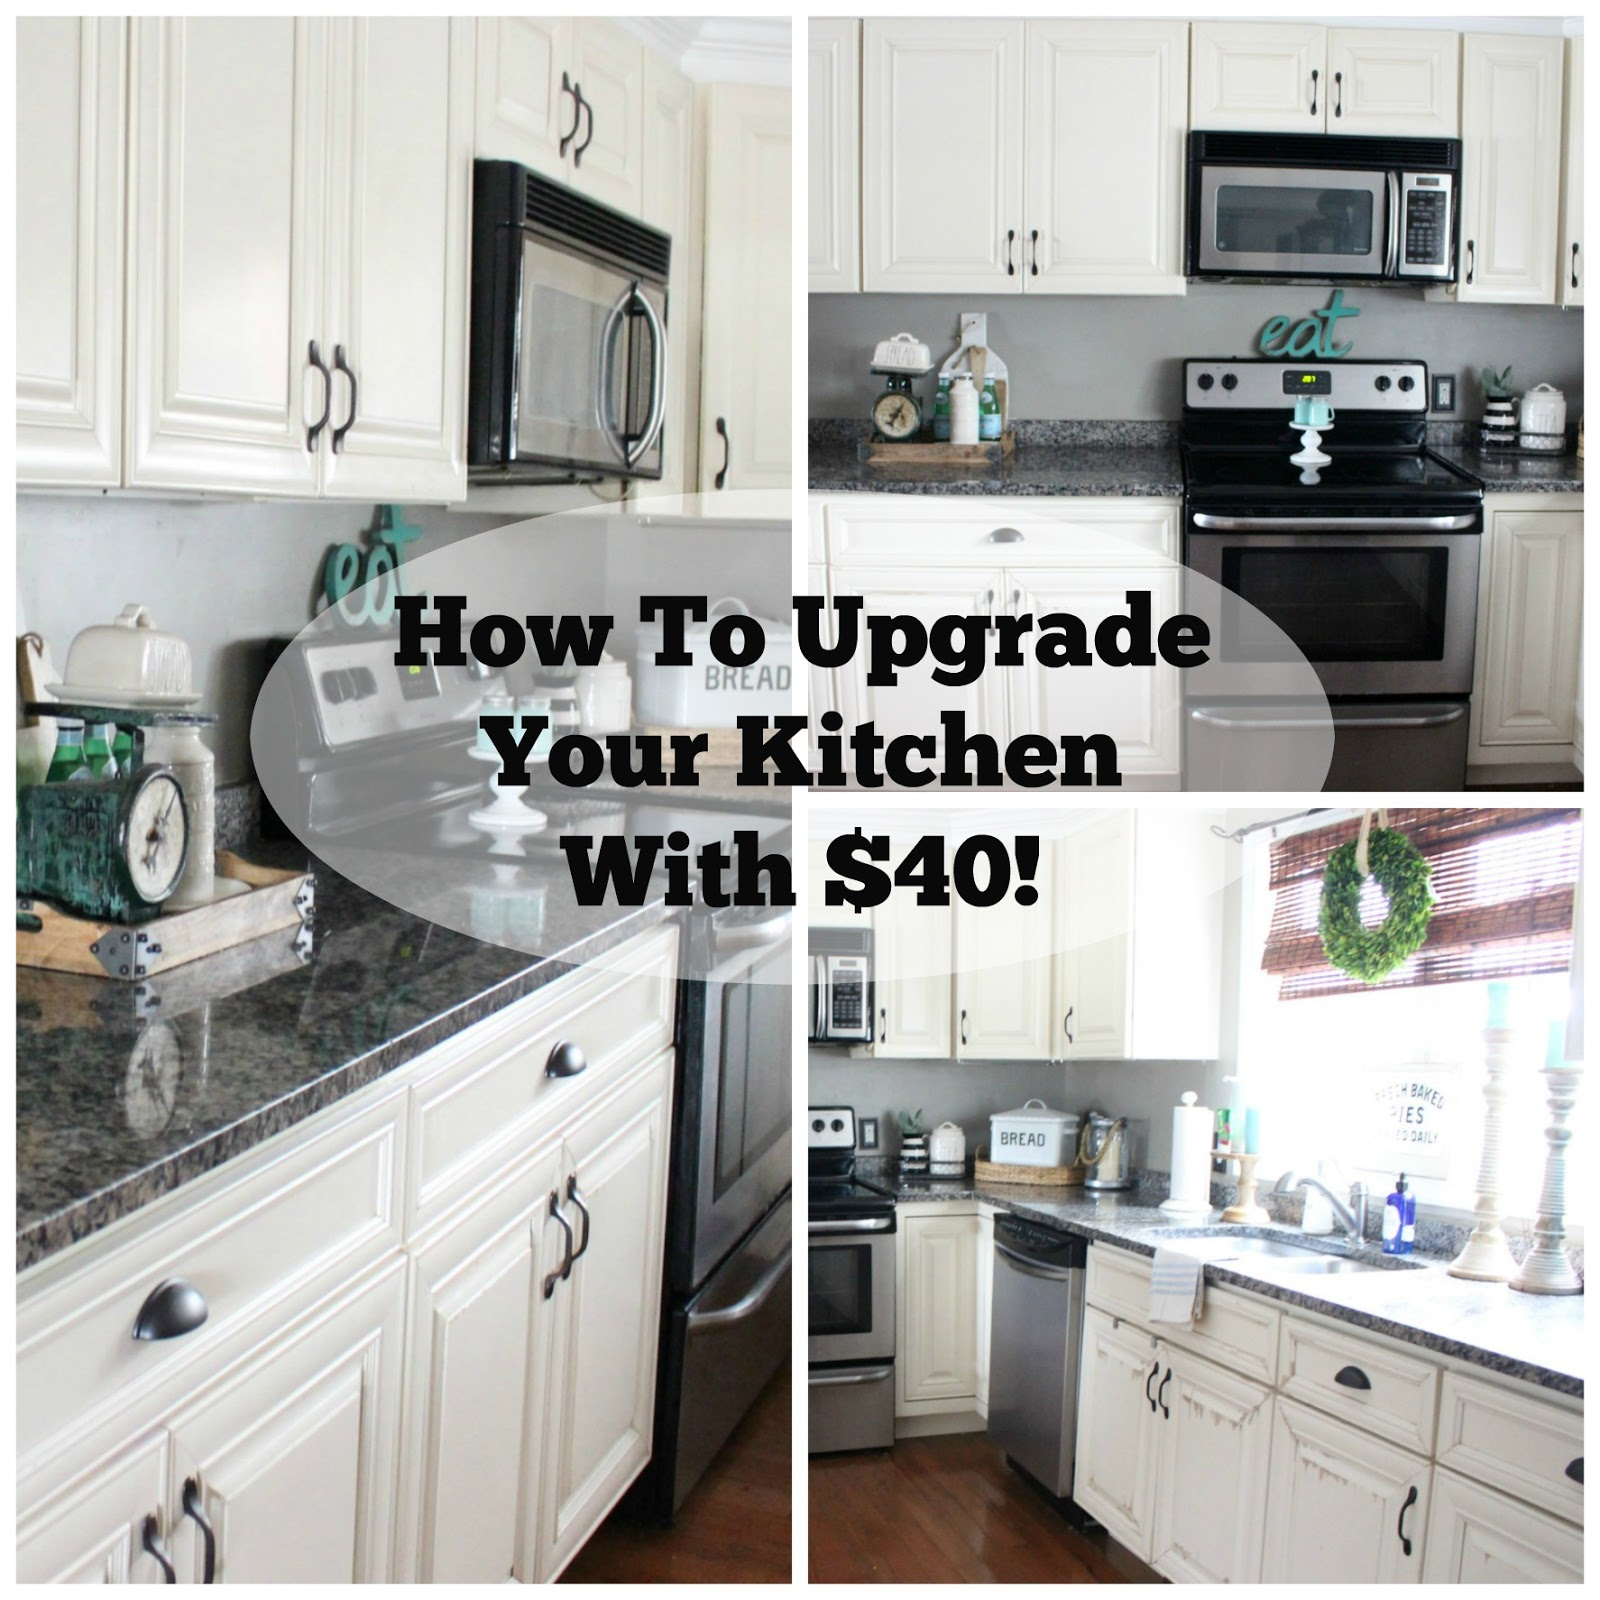 Fixer upper kitchen cabinet pulls - Fixer Upper Kitchen Cabinets What Was It About The Kitchen That I Still Didn T